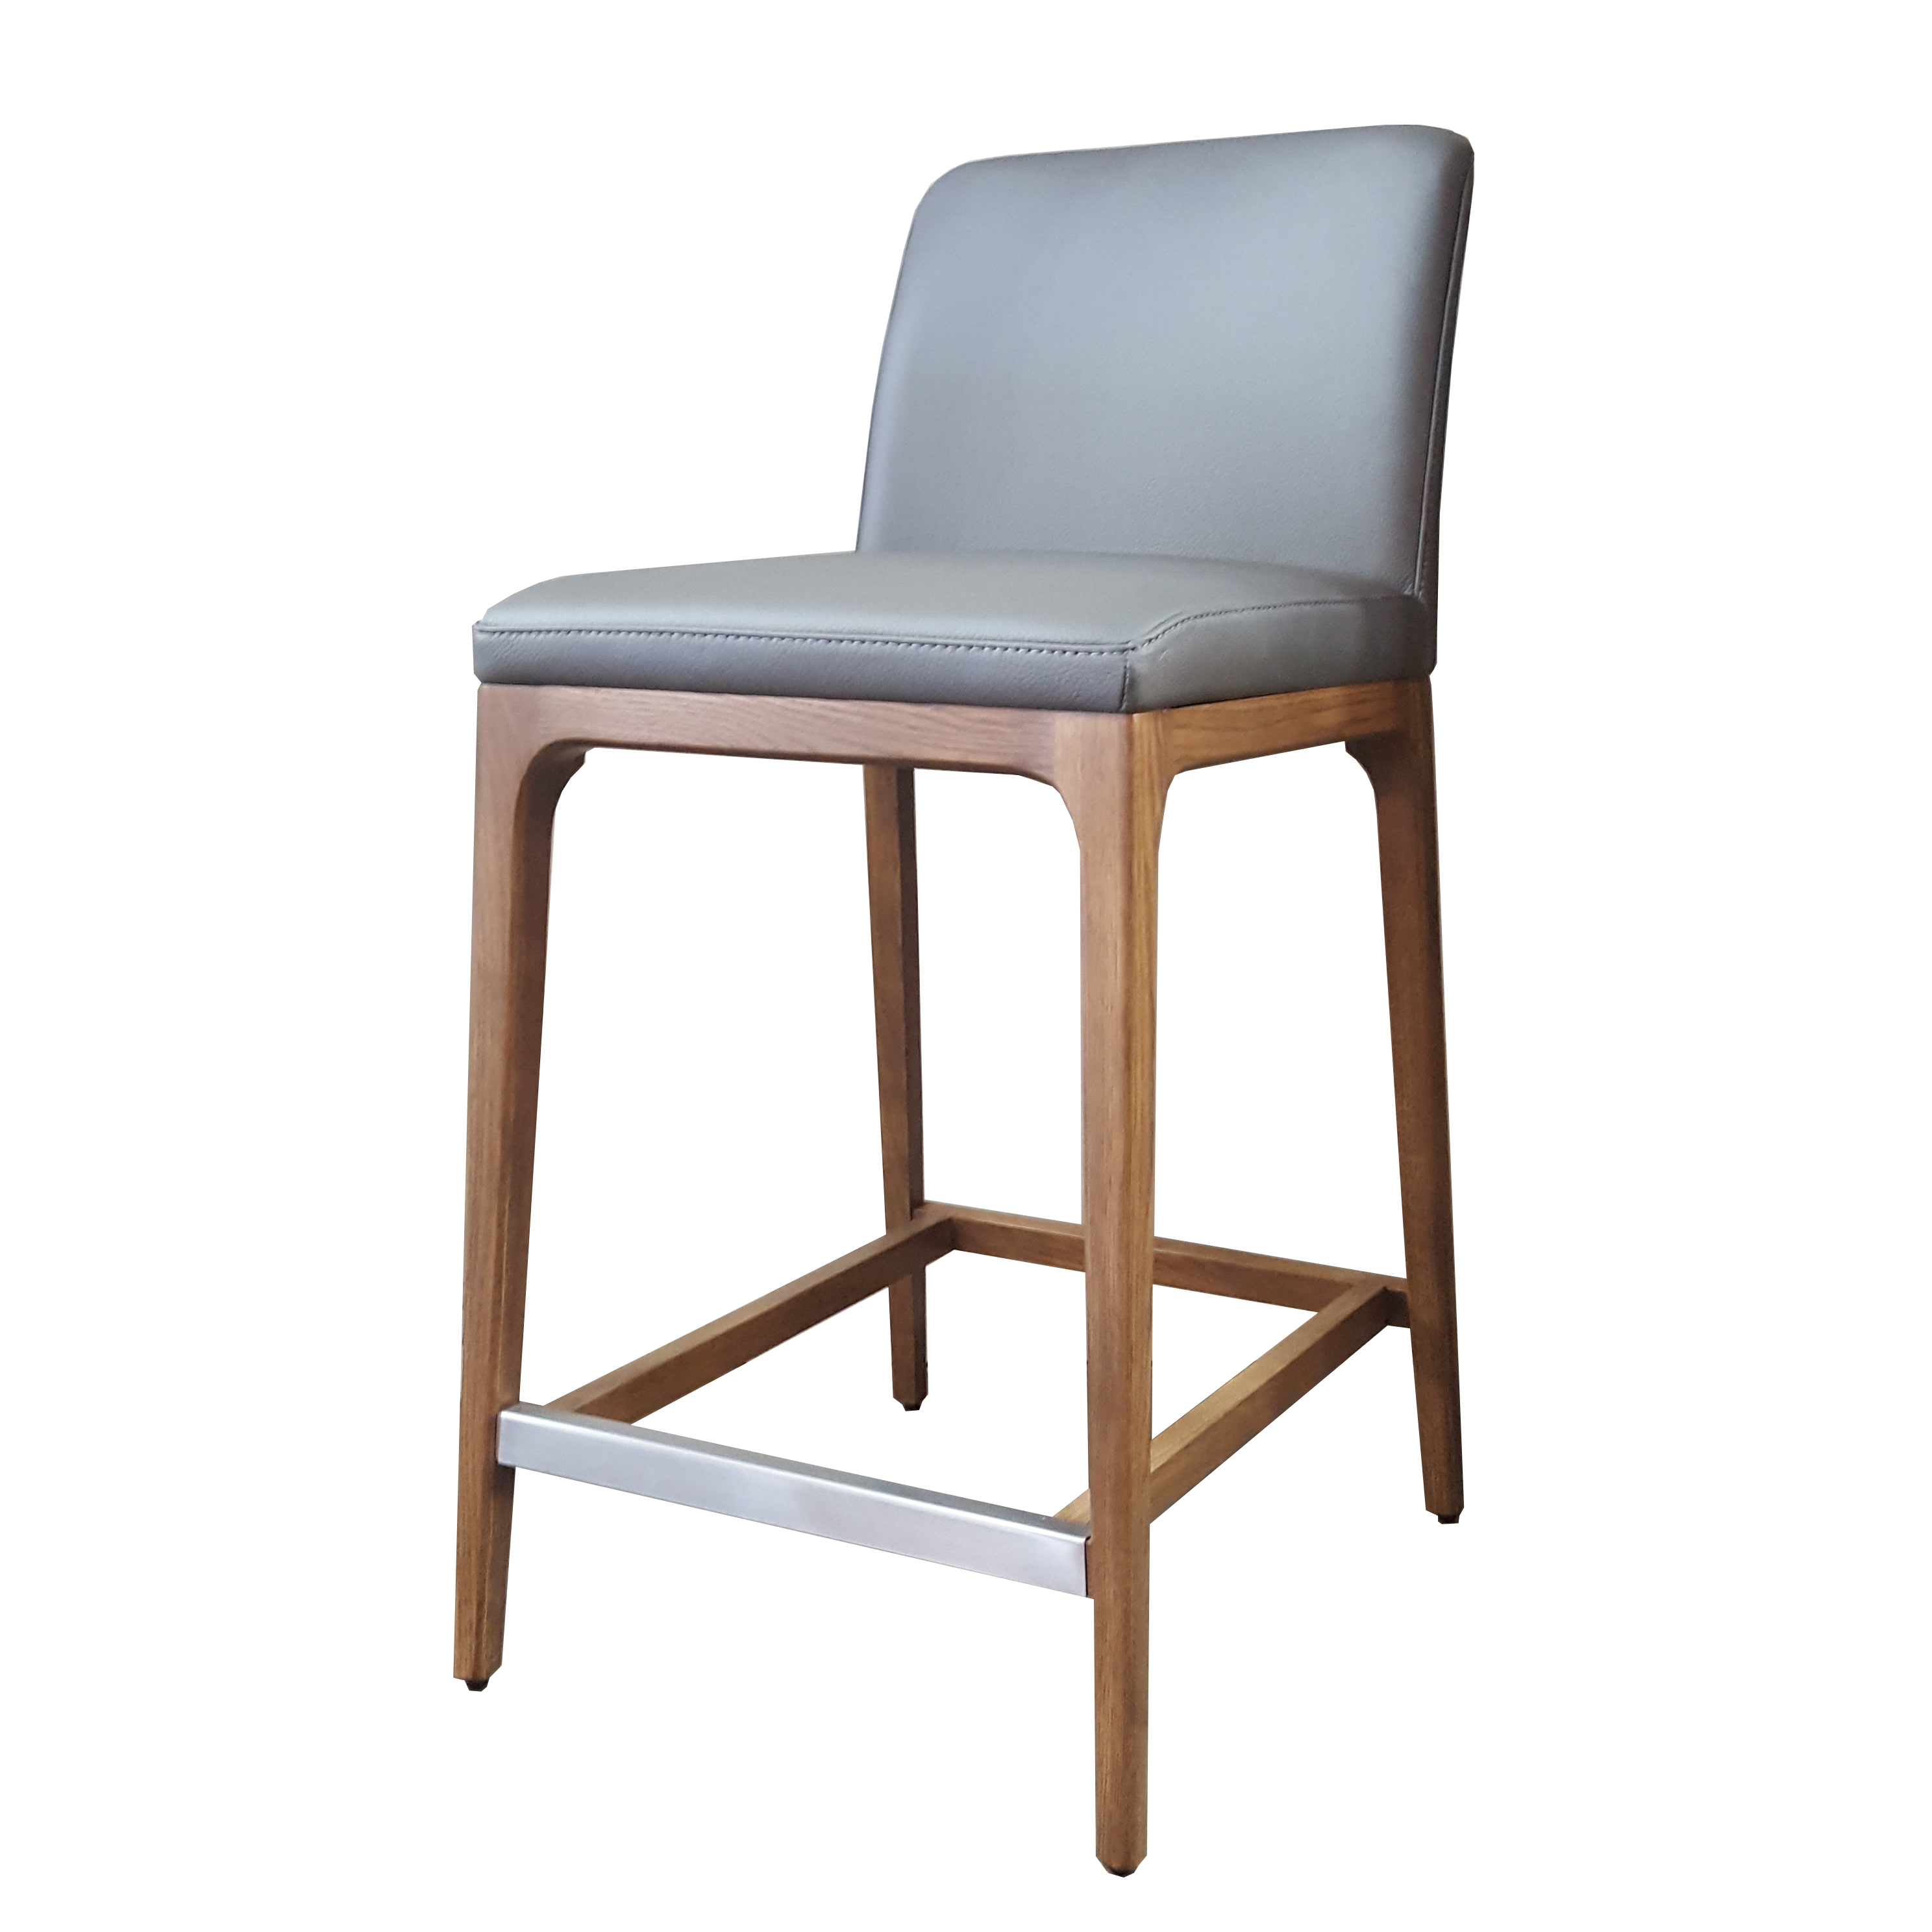 Swell Lucia Counter Stool Ibusinesslaw Wood Chair Design Ideas Ibusinesslaworg